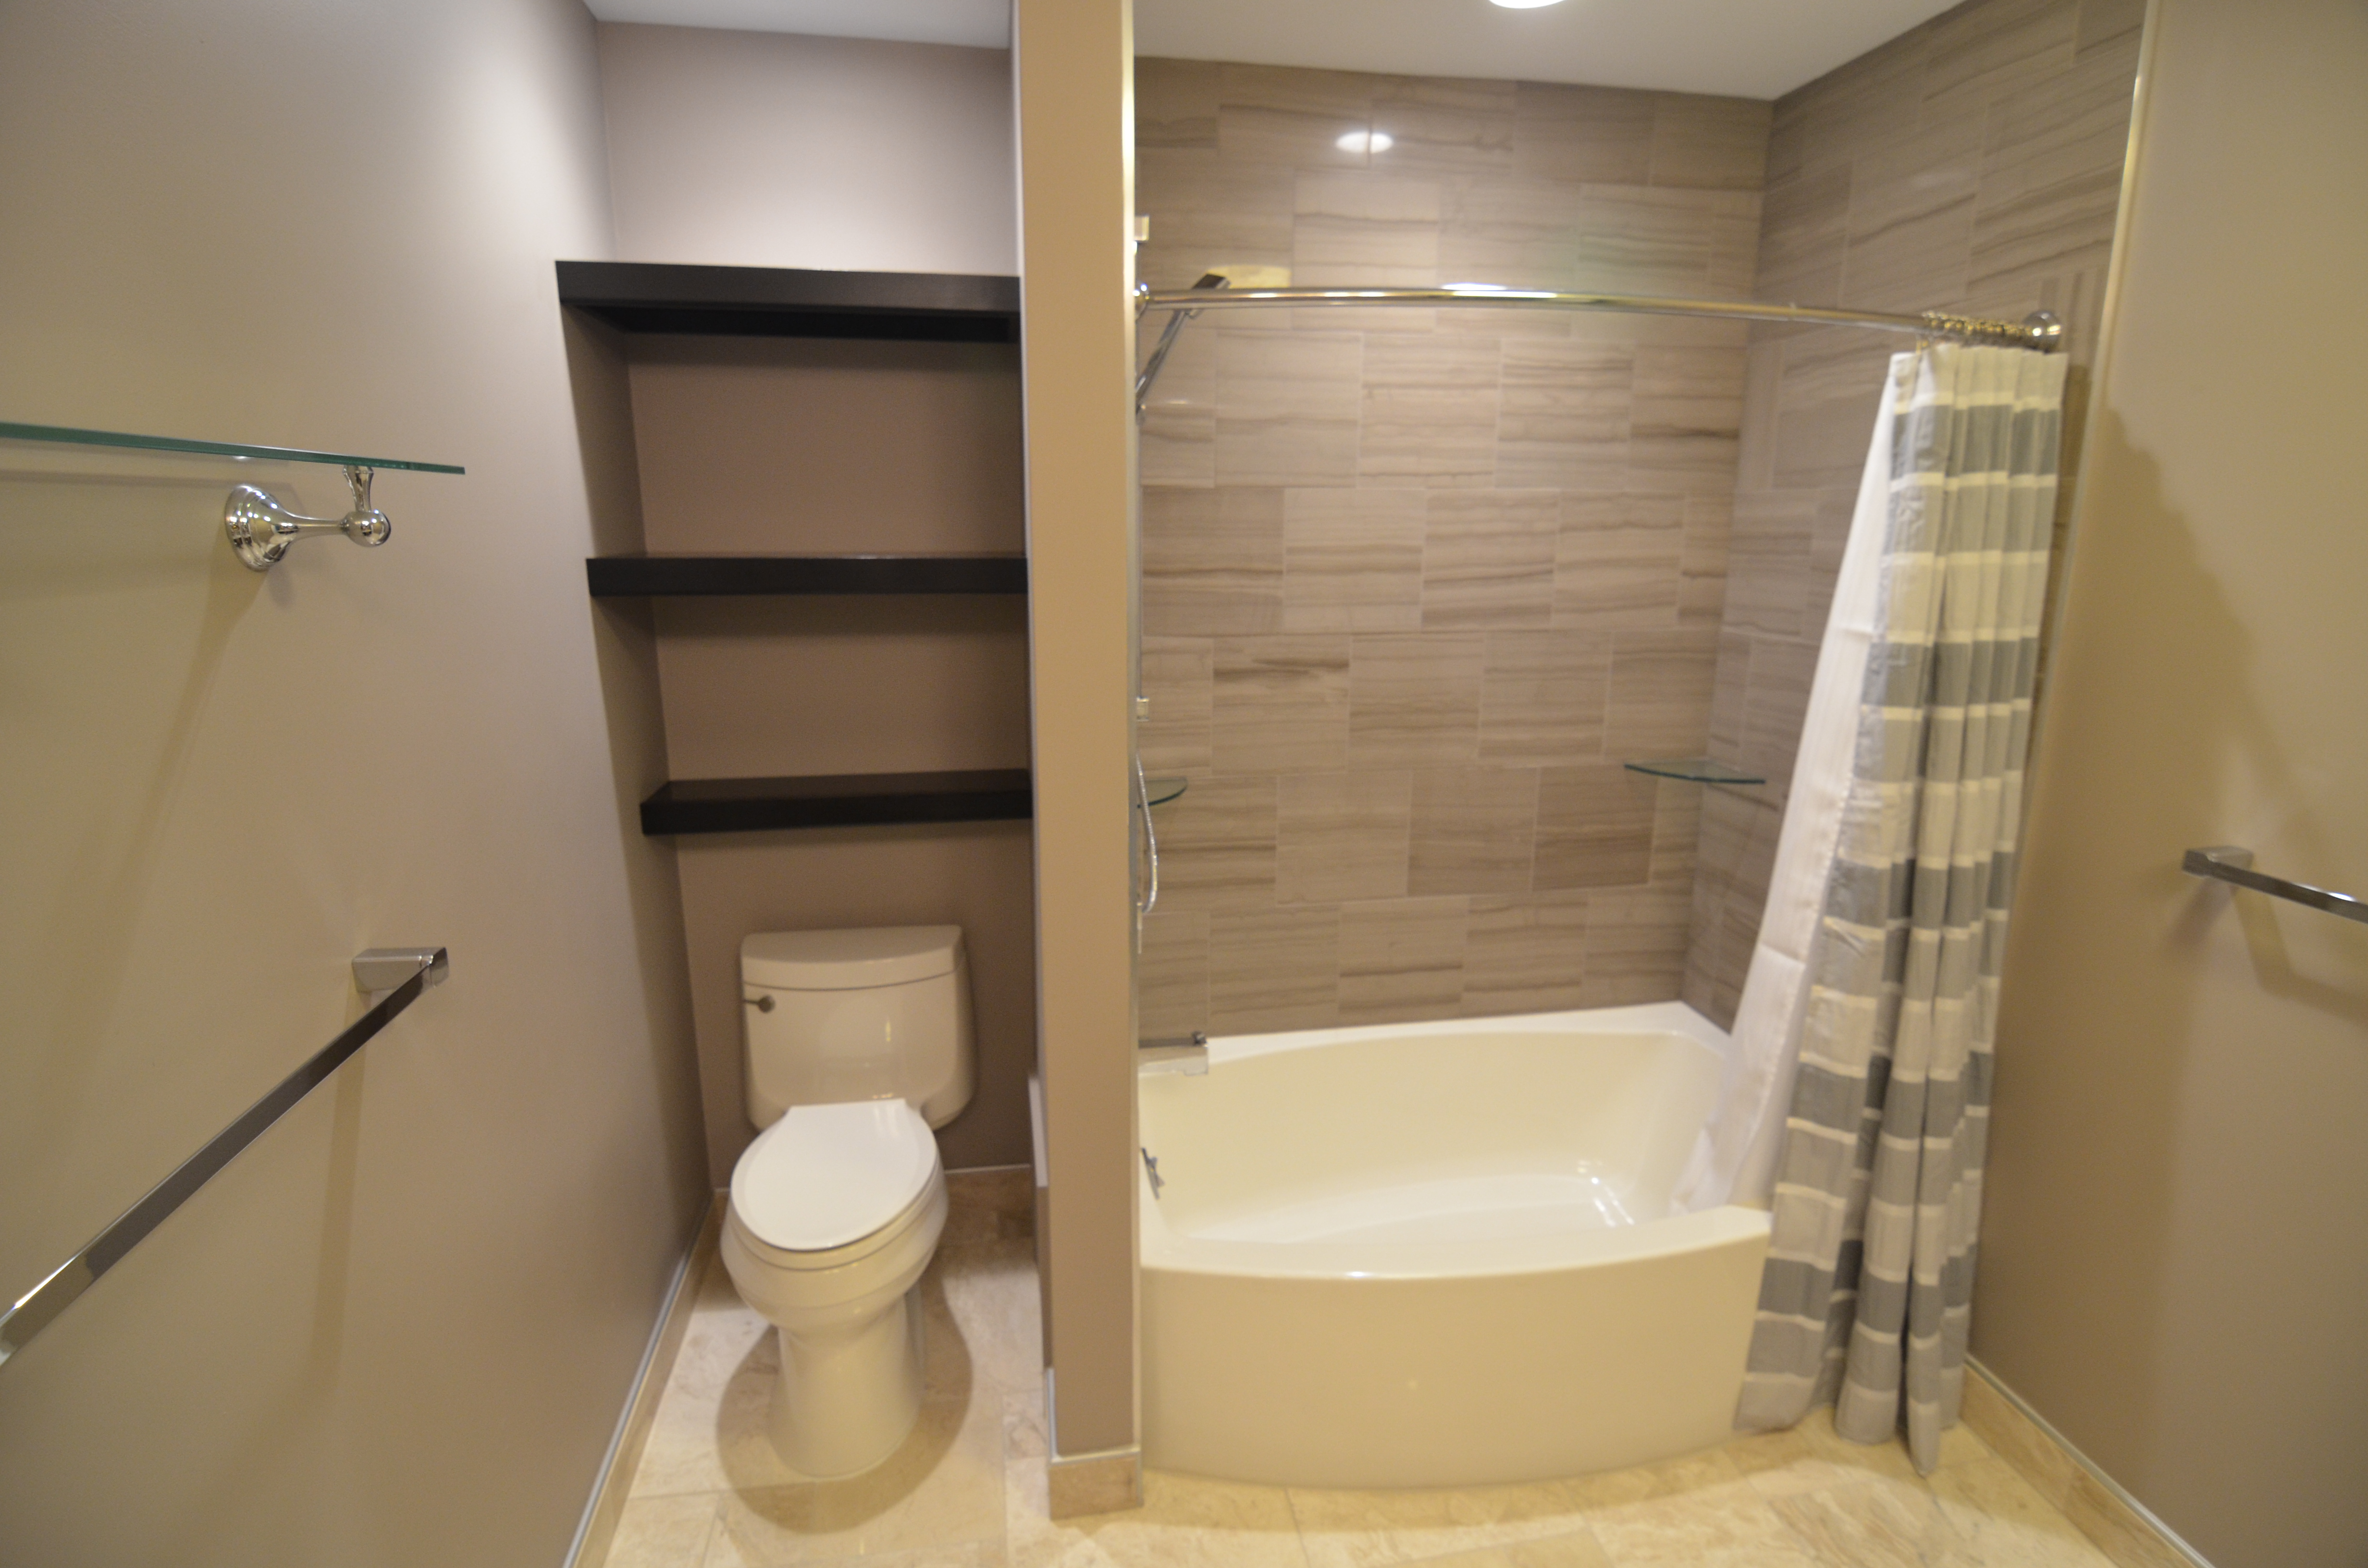 Dunhill Drive Hall Bathroom Remodeling Voorhees NJ By Next - Bathroom remodeling cherry hill nj